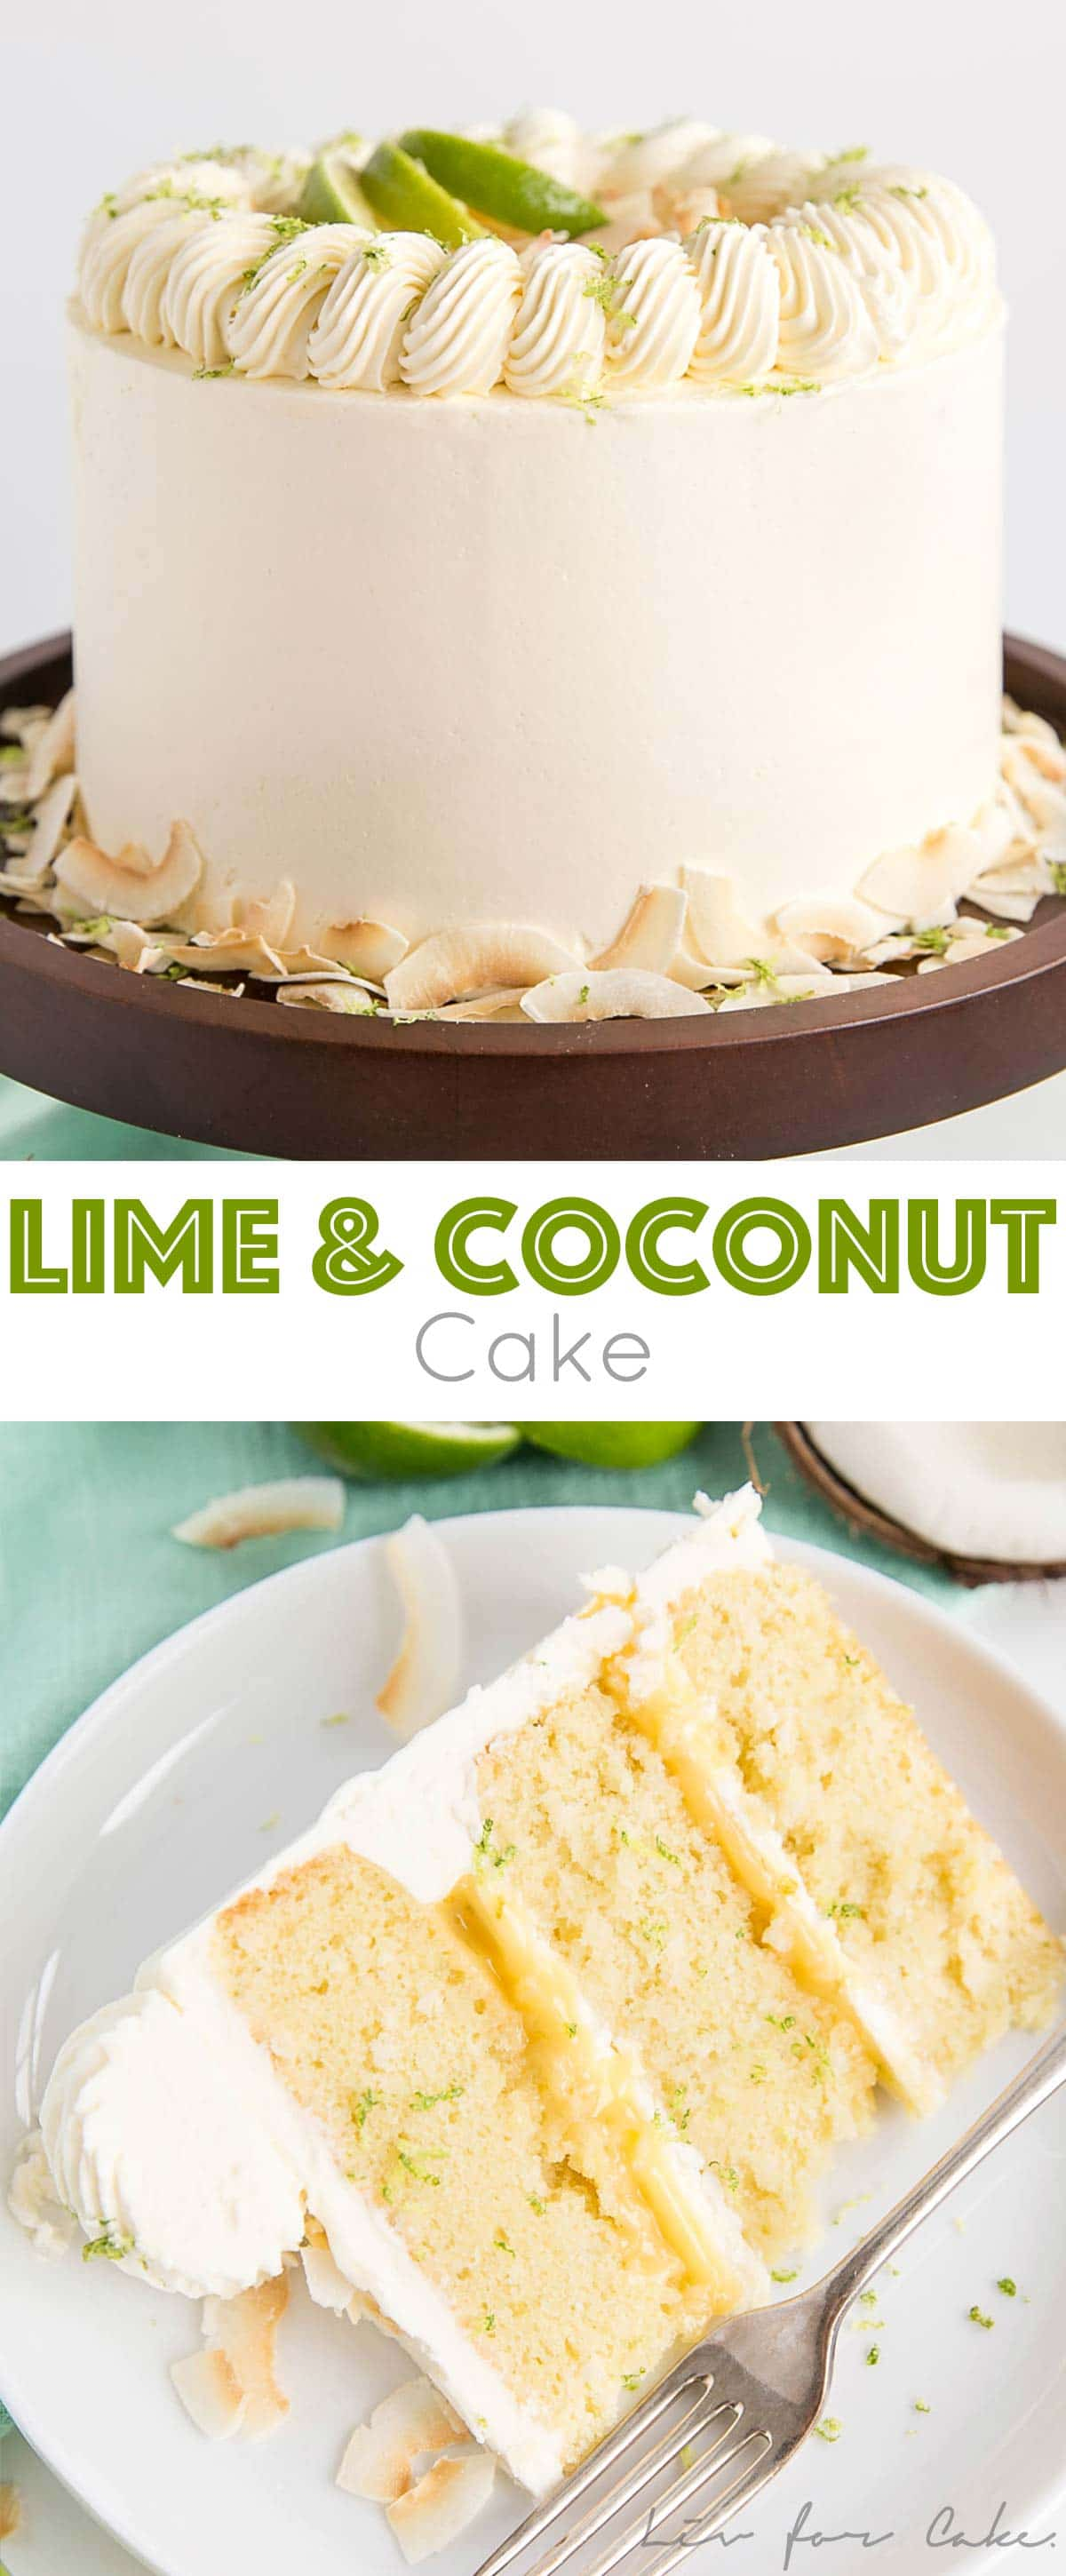 This Lime & Coconut Cake evokes the very best of those tropical island flavours. Tender coconut lime cake layers with a tangy lime curd and silky coconut buttercream.